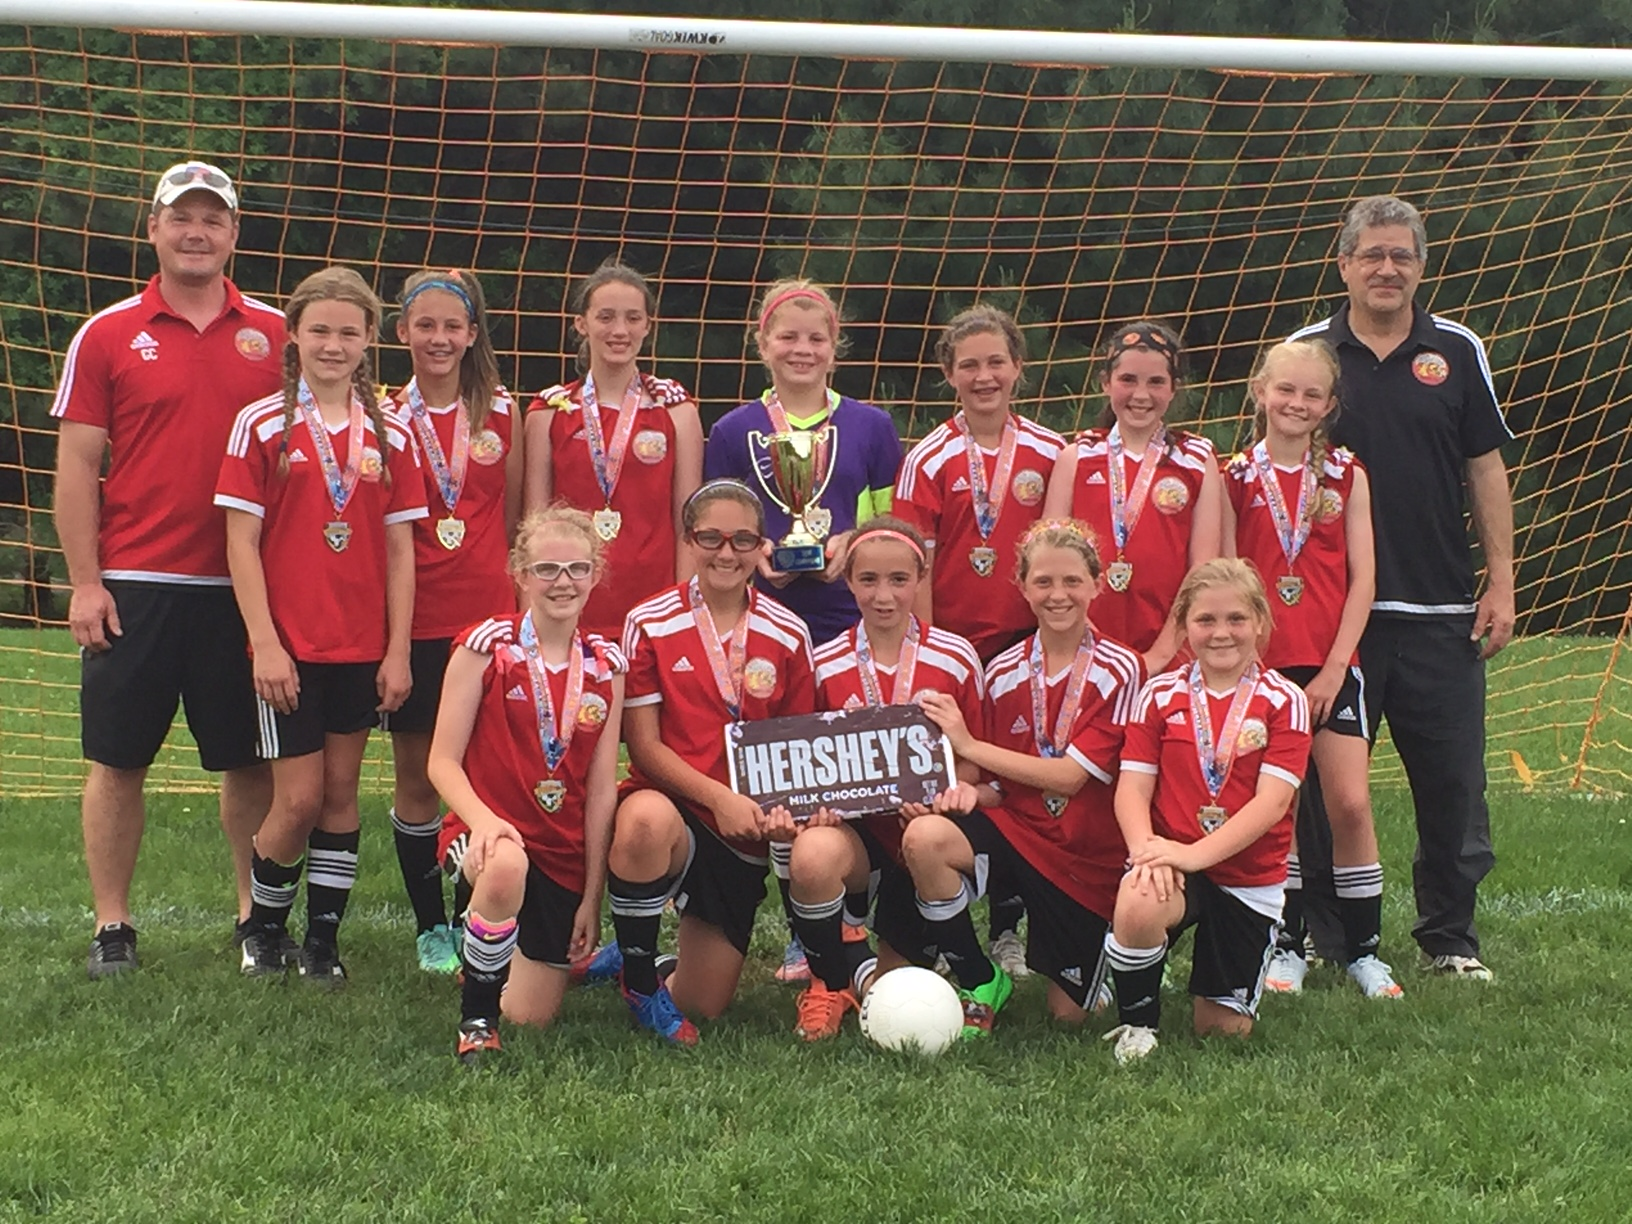 The U12 Girls Cecil Express finished up their 50 game 2015-2016 season with a championship at the 2016 Hershey Memorial Day Challenge Cup. CONGRATS!!!